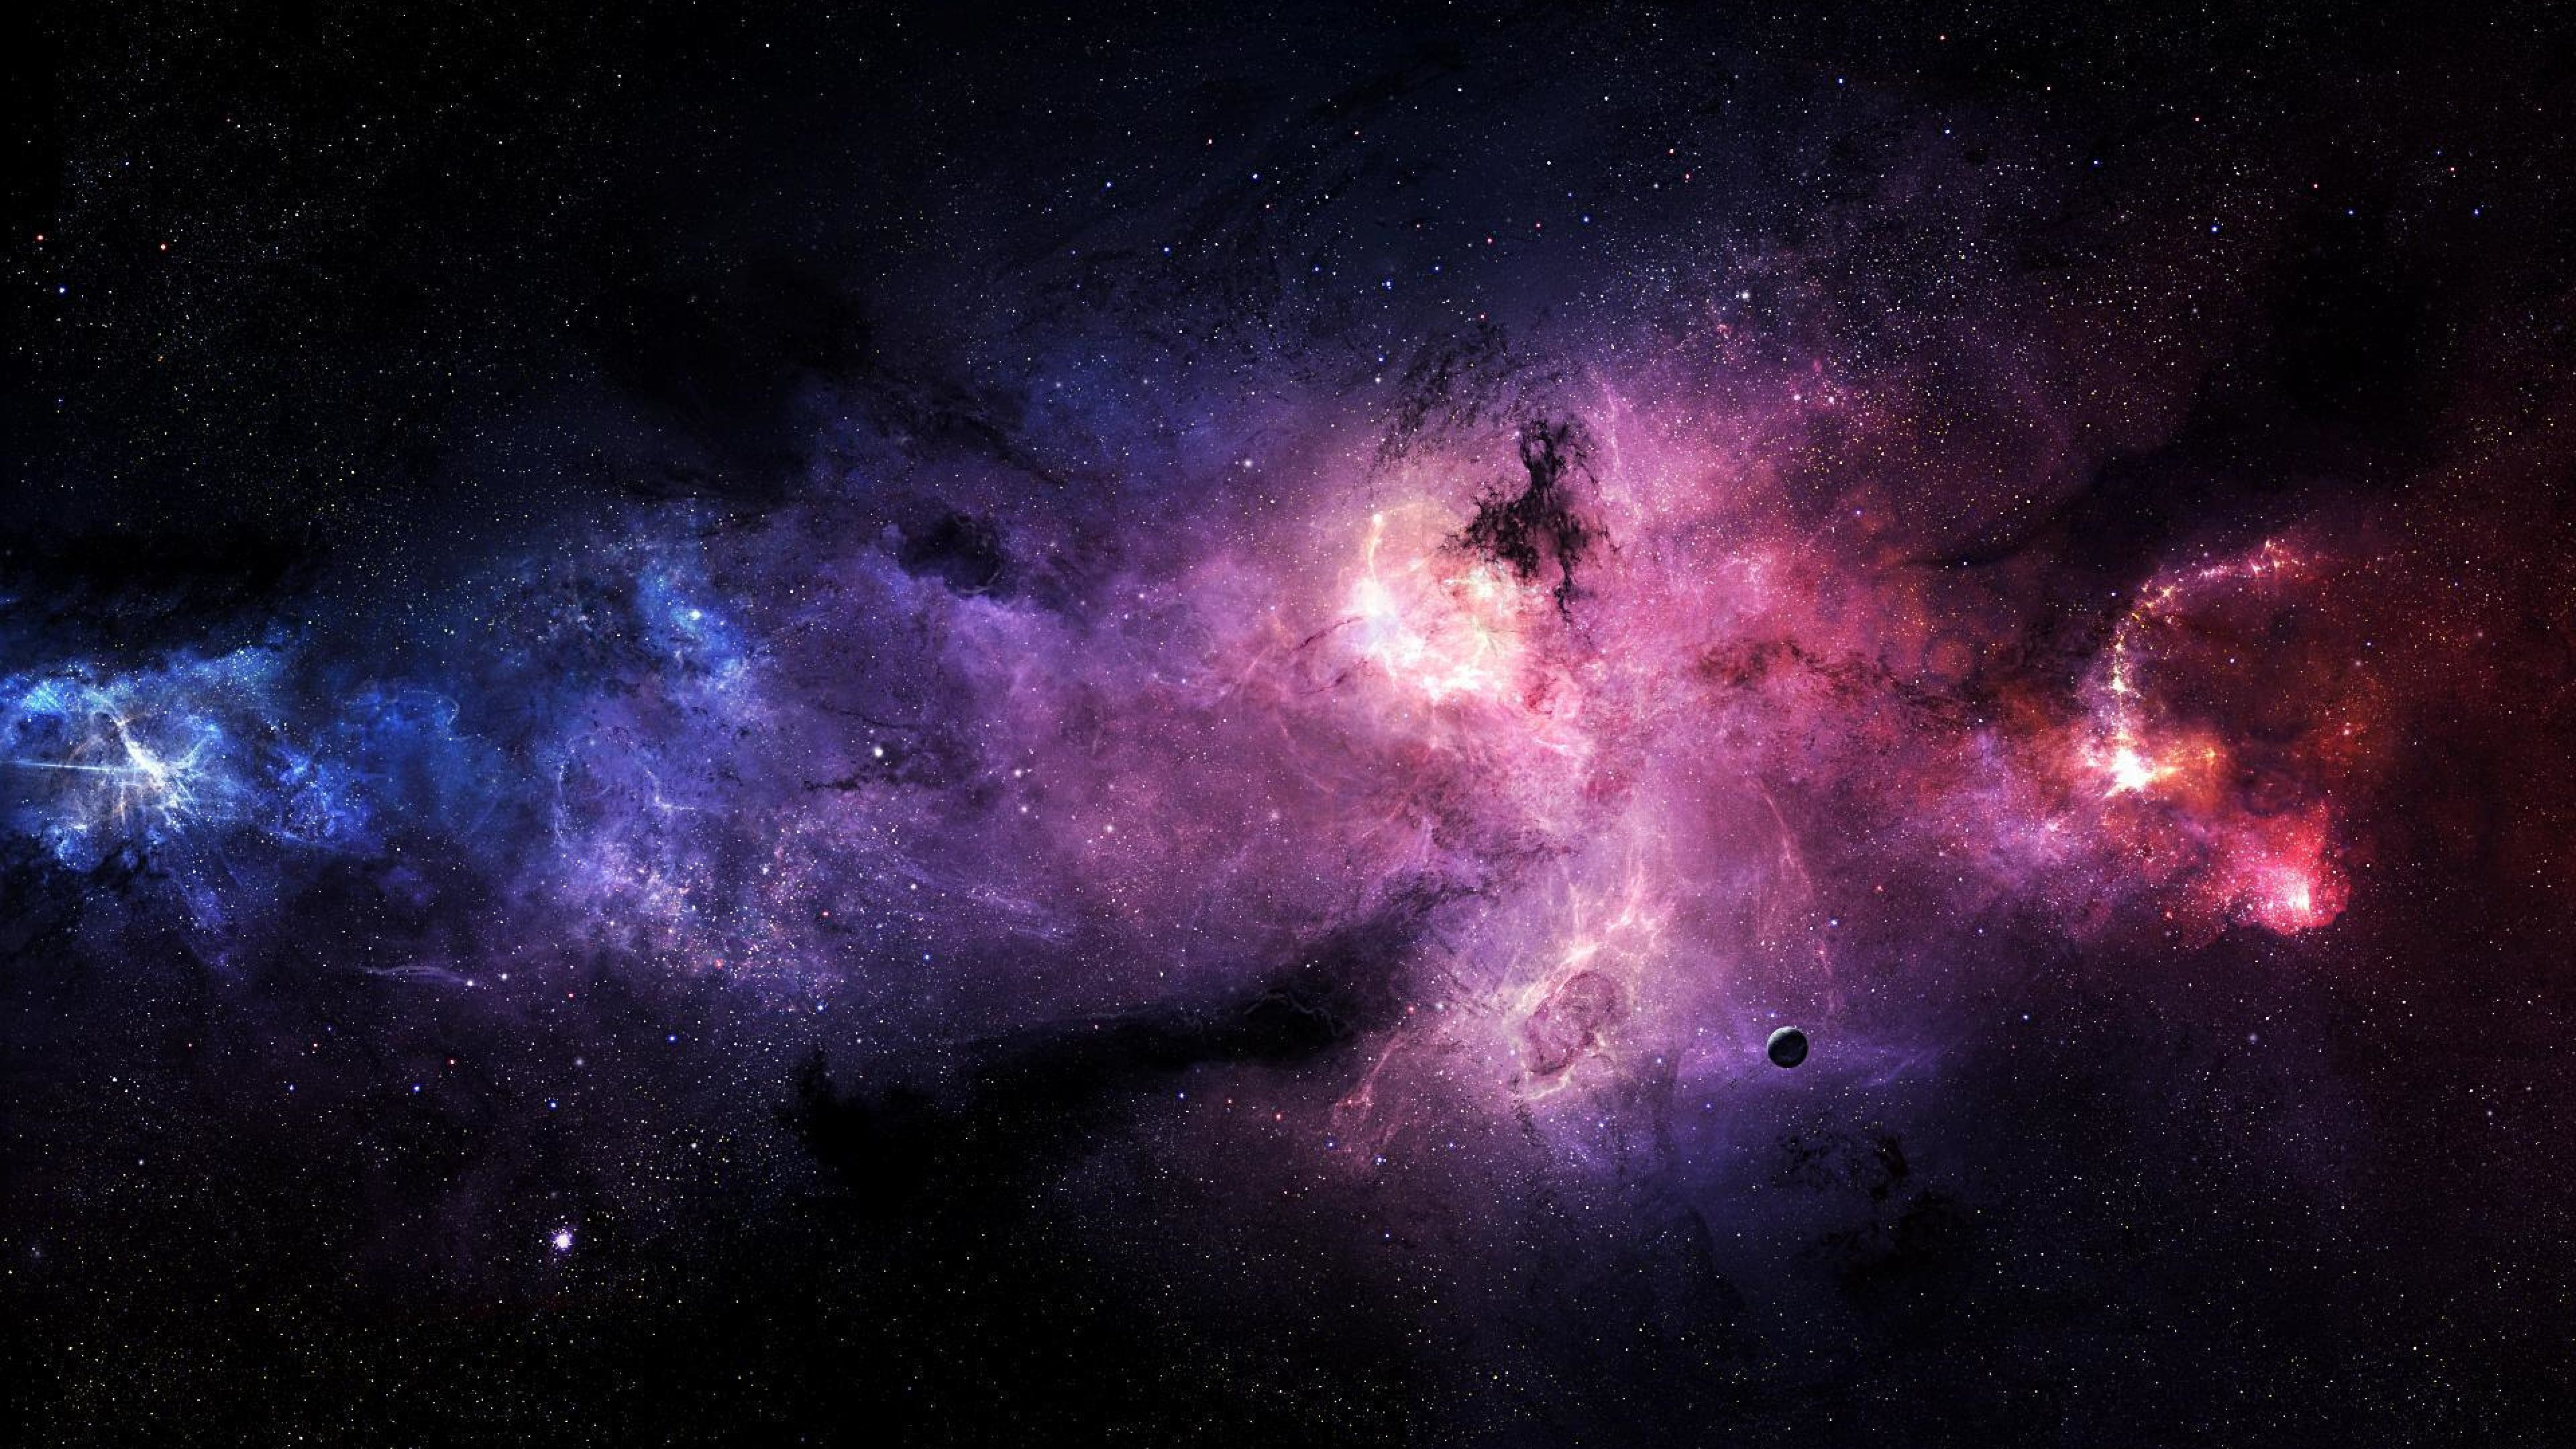 3840x2160 High Quality Space Wallpapers (43 Wallpapers)